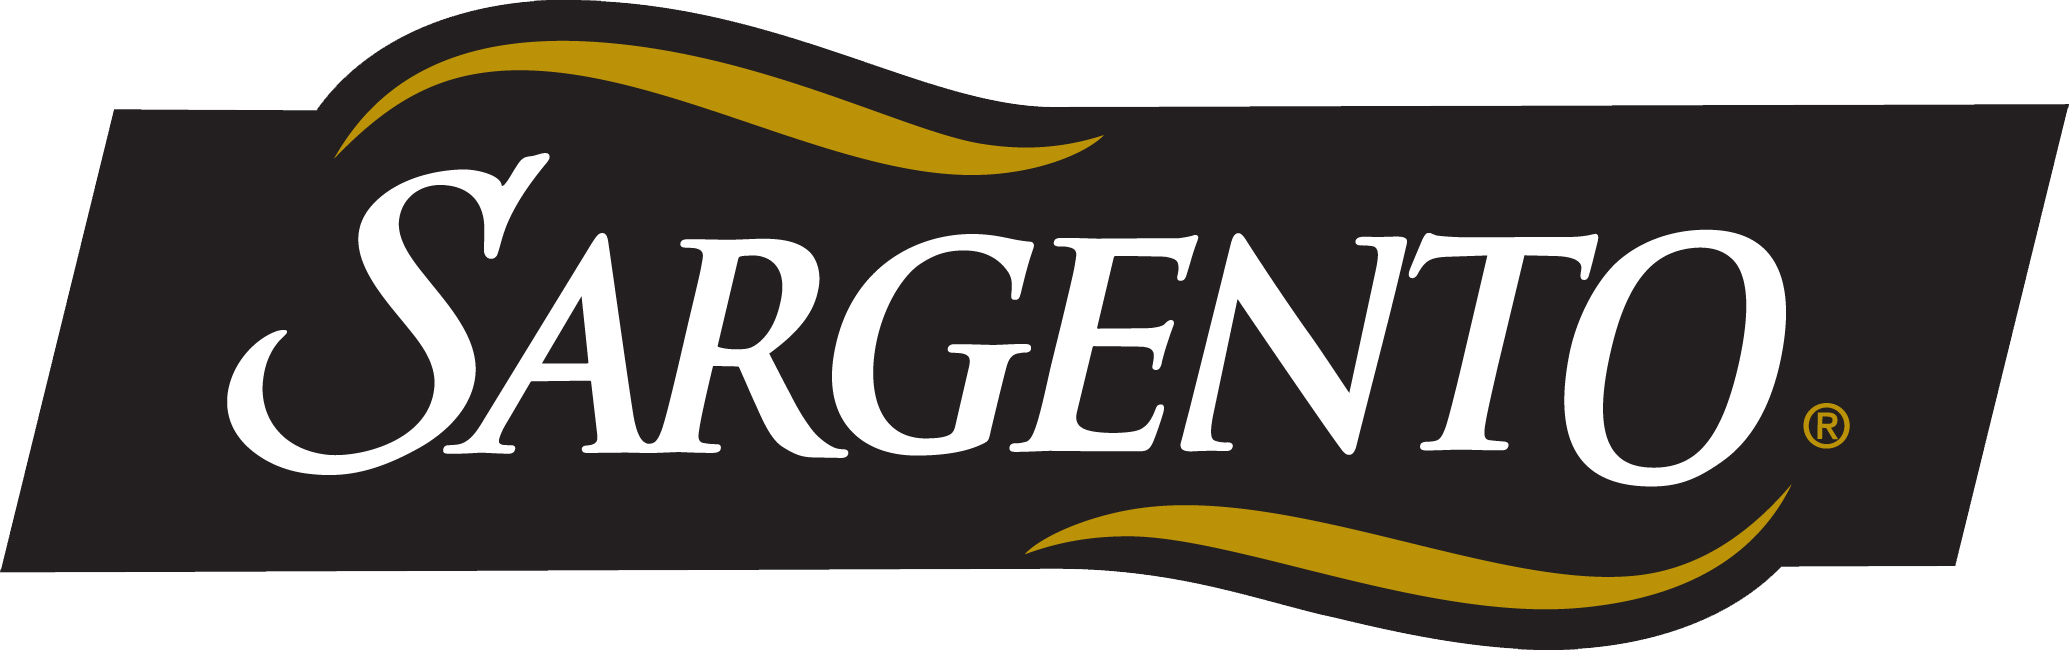 Sargento-20-png